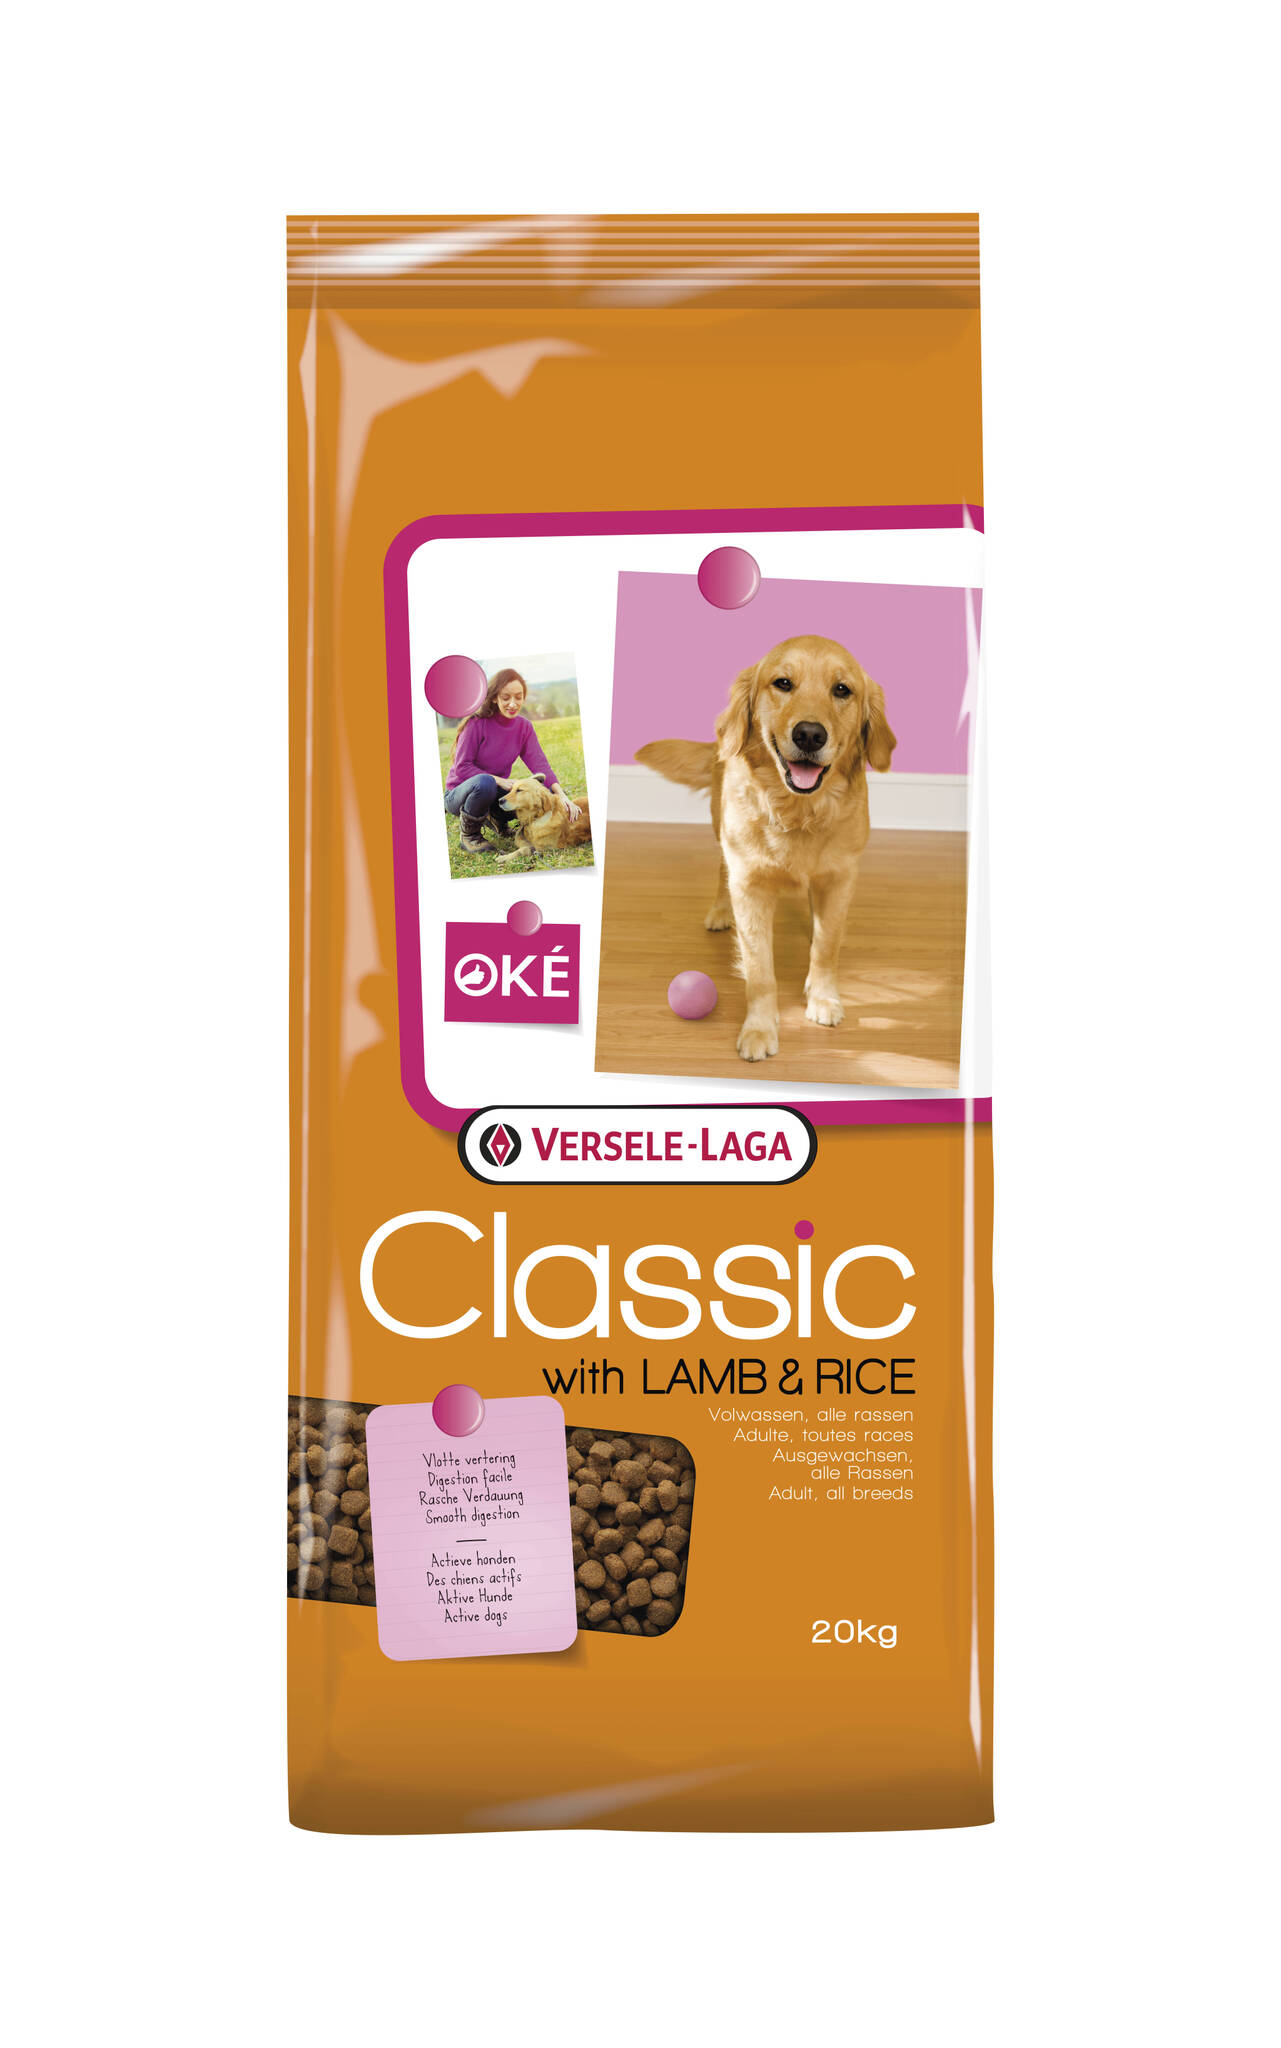 Classic with Lamb & Rice Adult All breeds 20kg